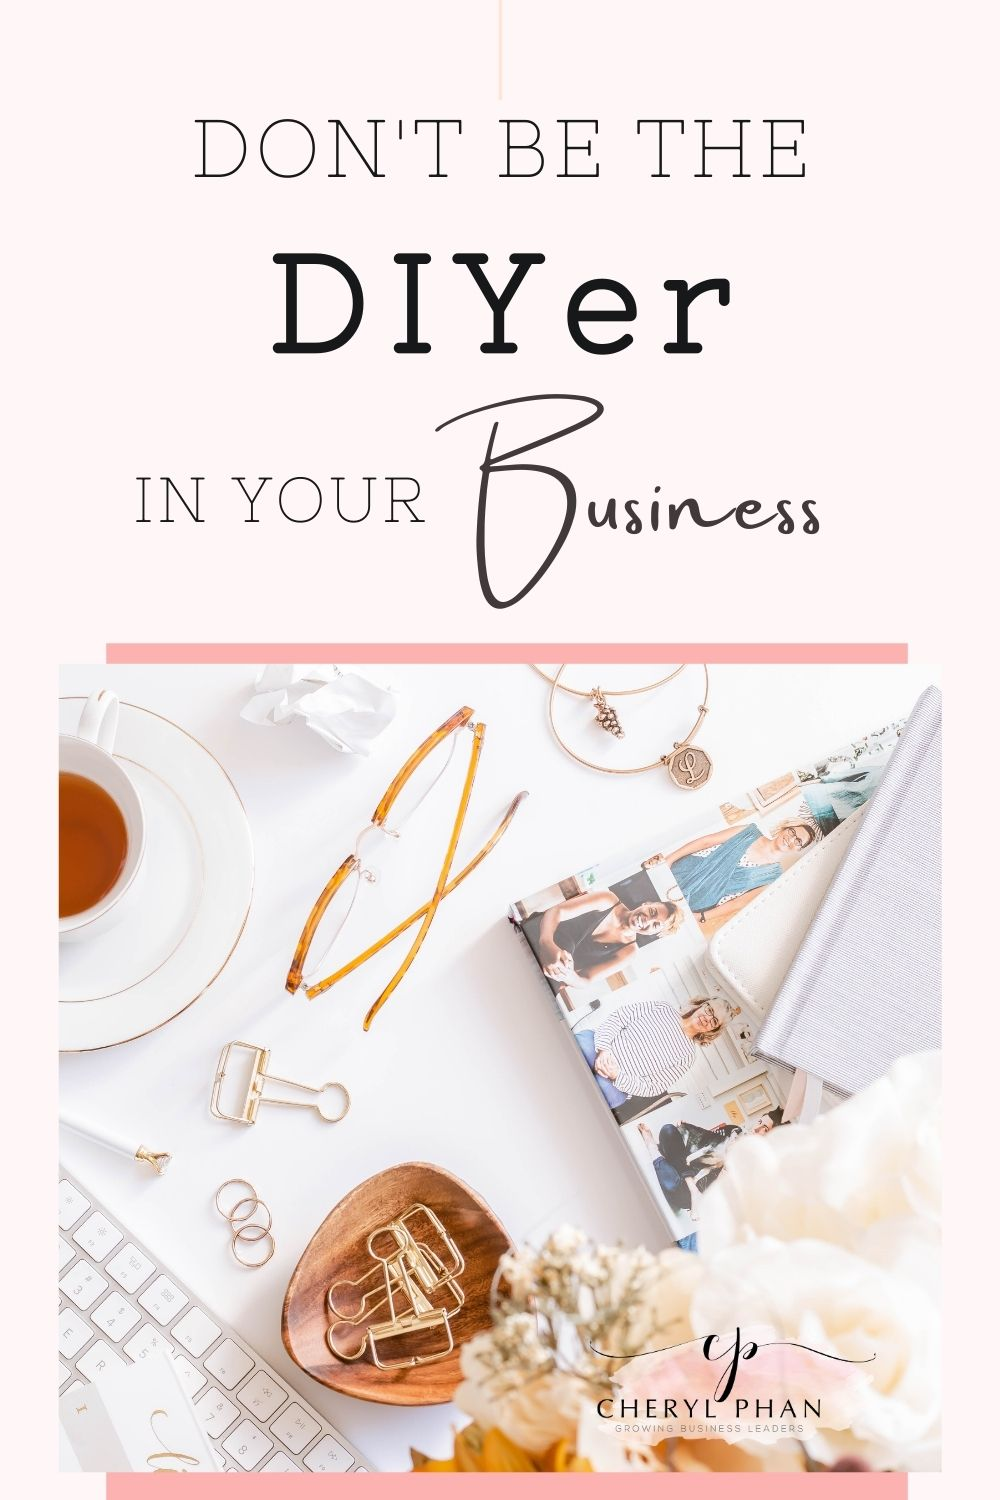 Don't be the DIYer in your business by Cheryl Phan